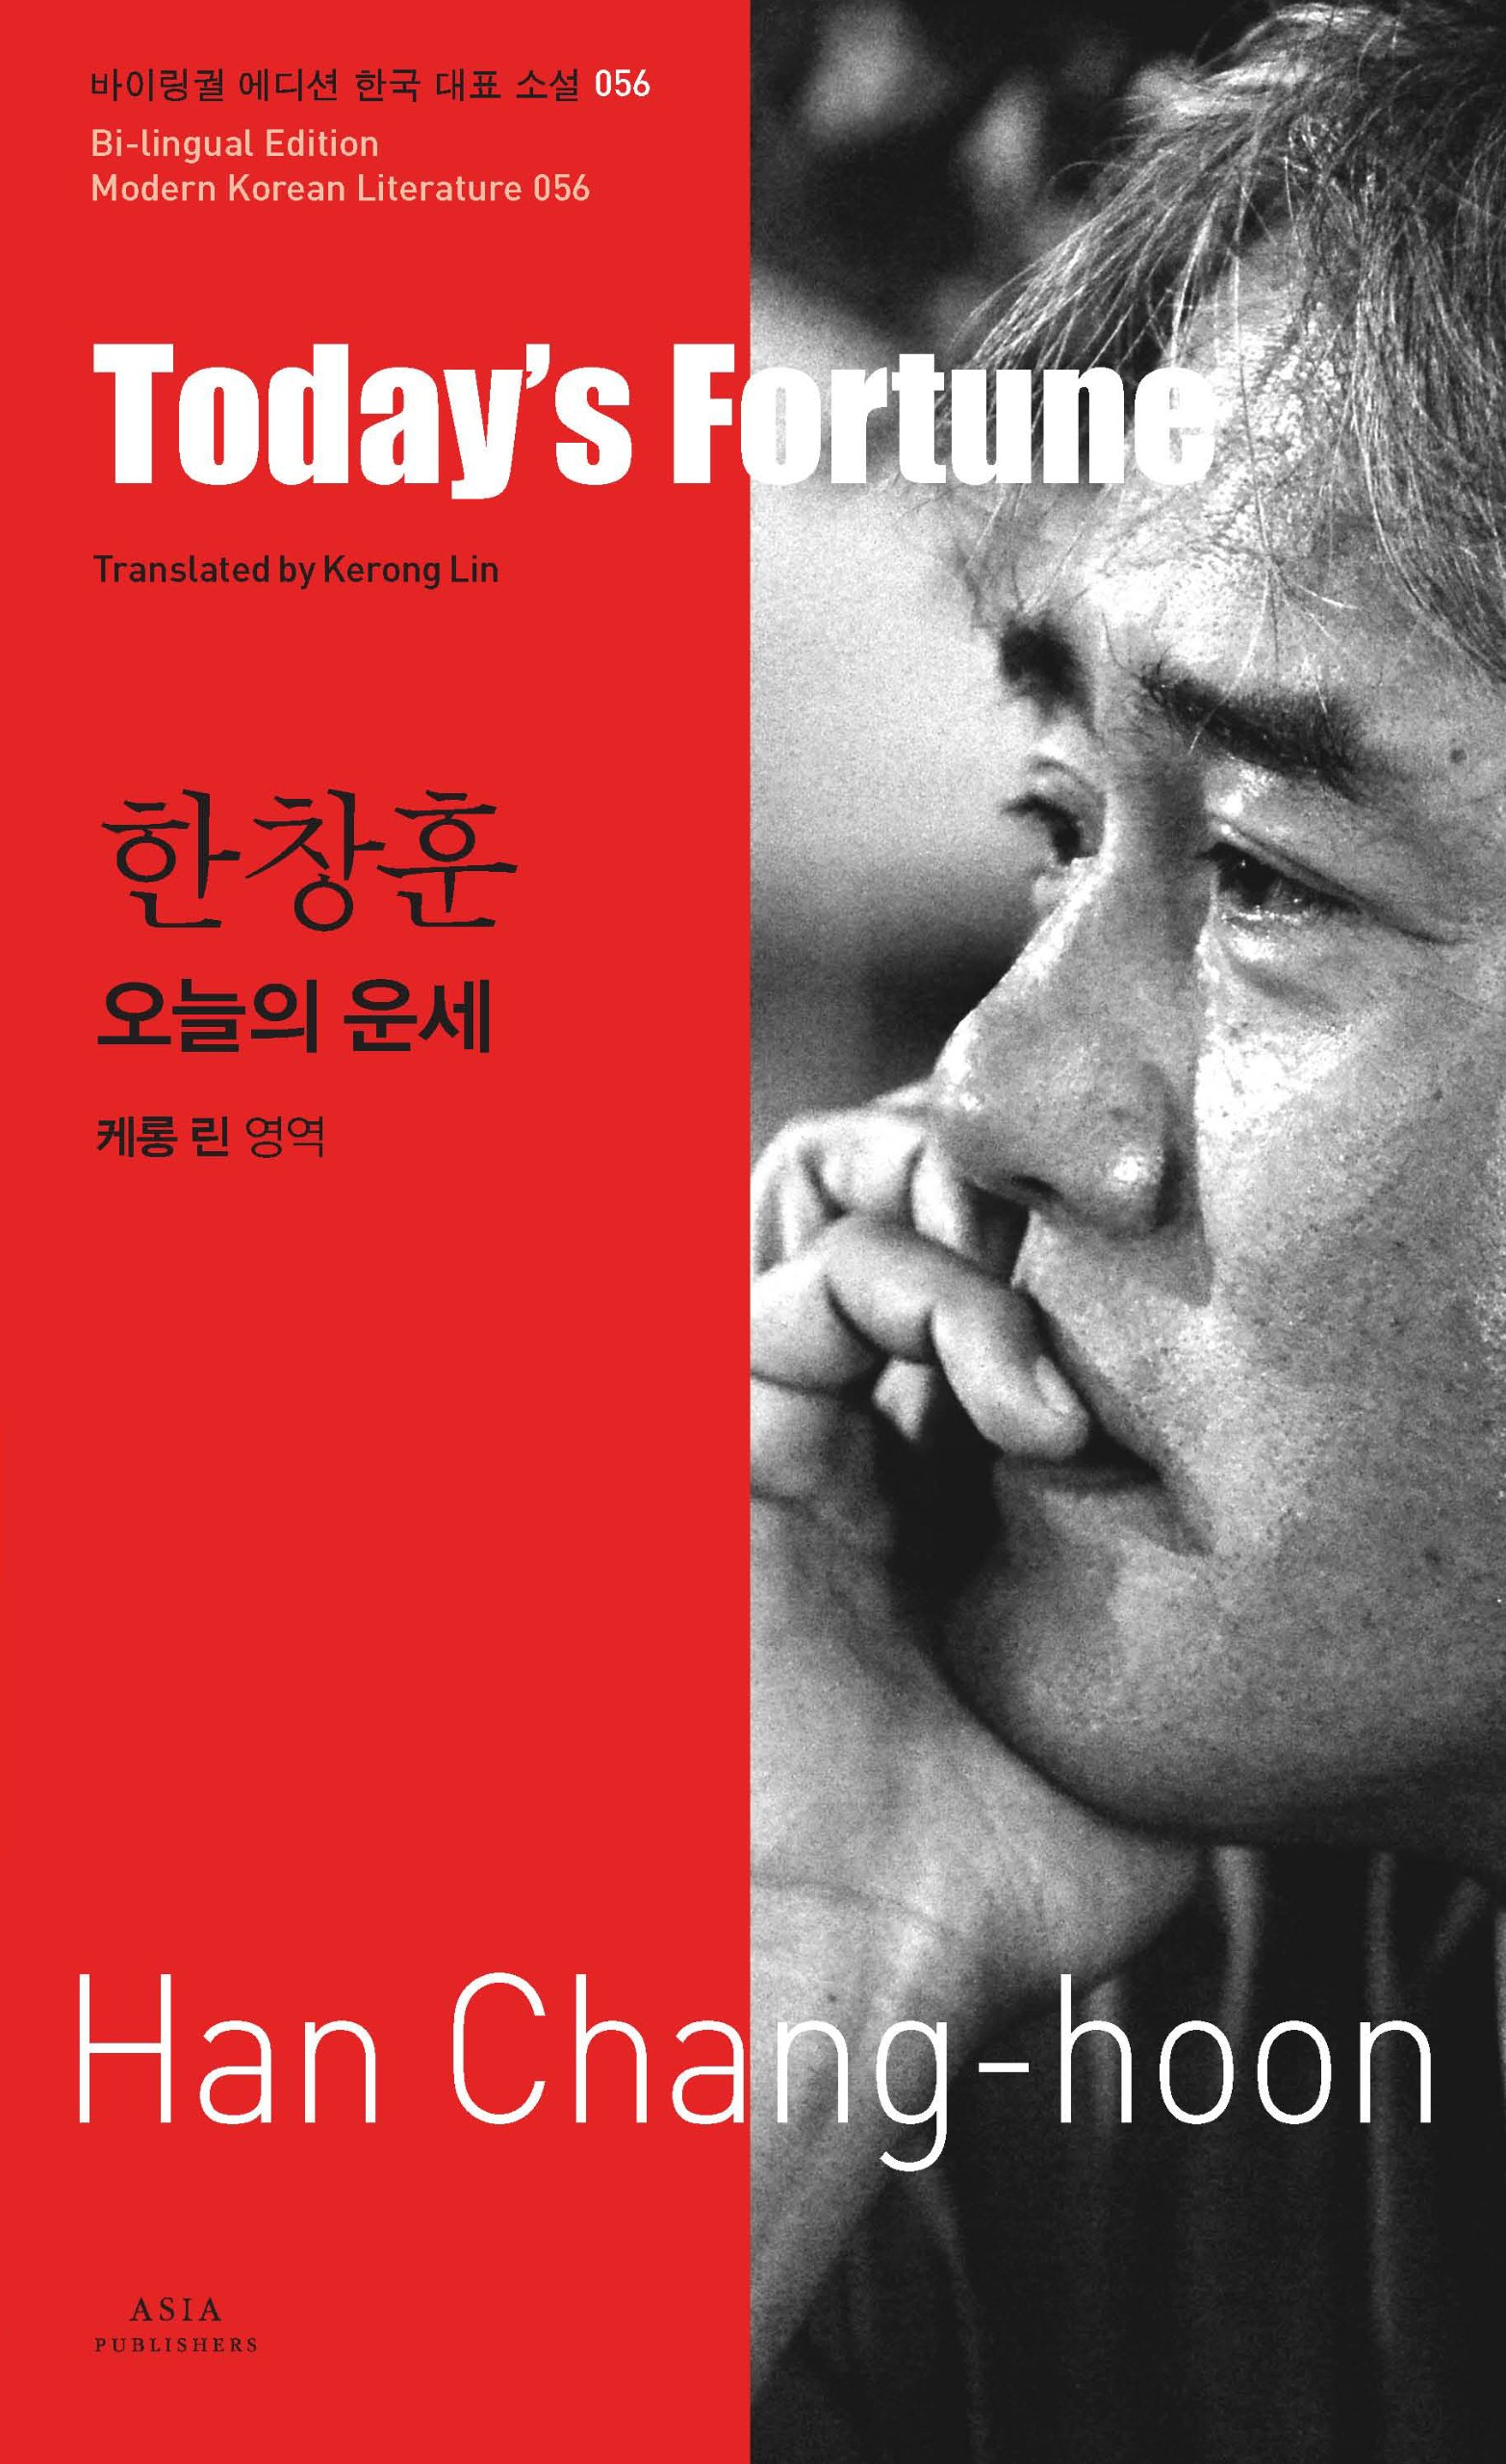 Read Online Today's Fortune (Bi-lingual Edition Modern Korean Literature, Volume 56) pdf